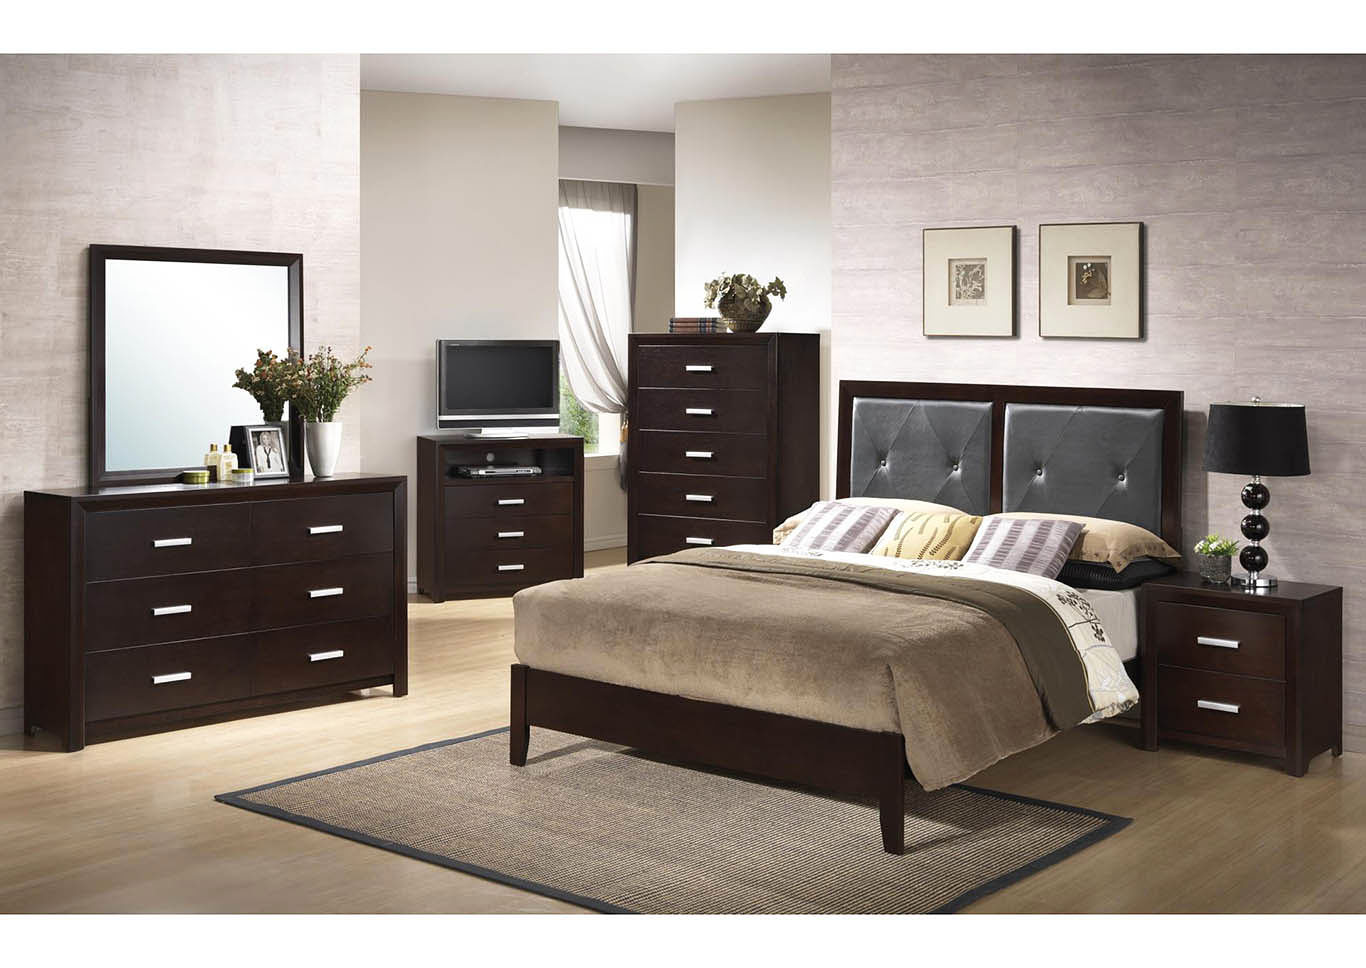 4 Piece Cappuccino Panel Bedroom Set,Global Trading